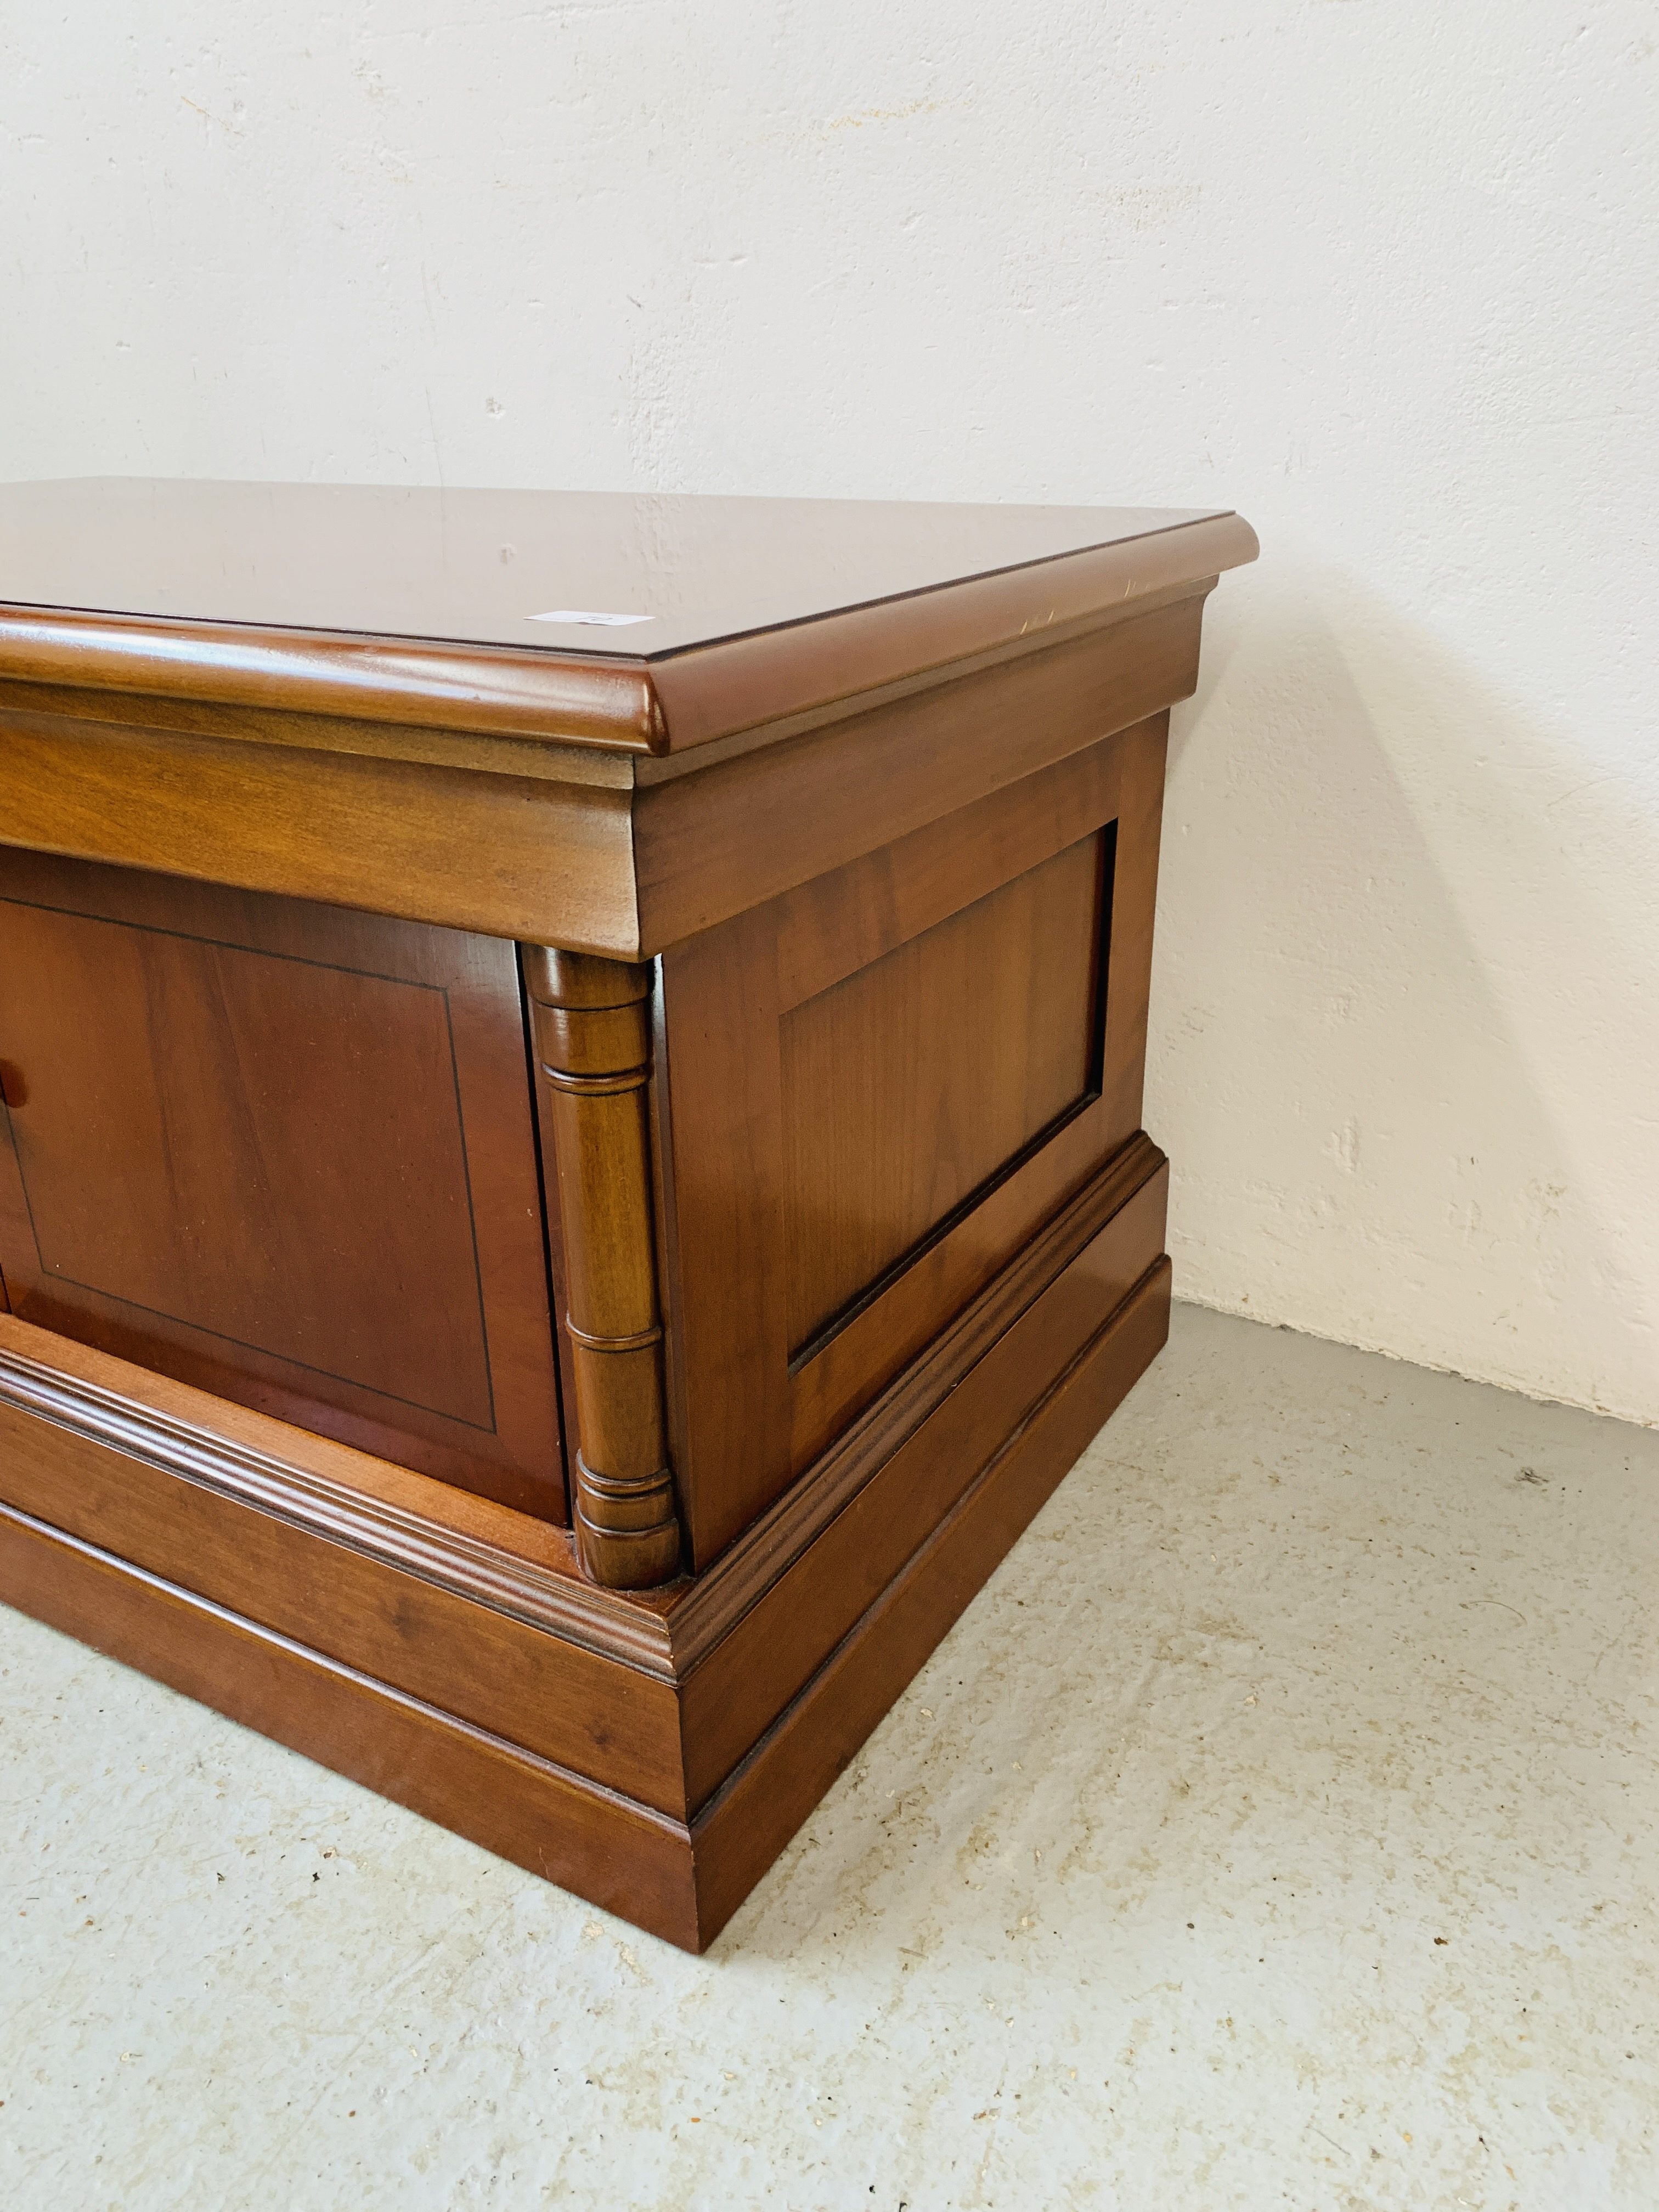 A MODERN CHERRYWOOD FINISH TELEVISION STAND - Image 6 of 7